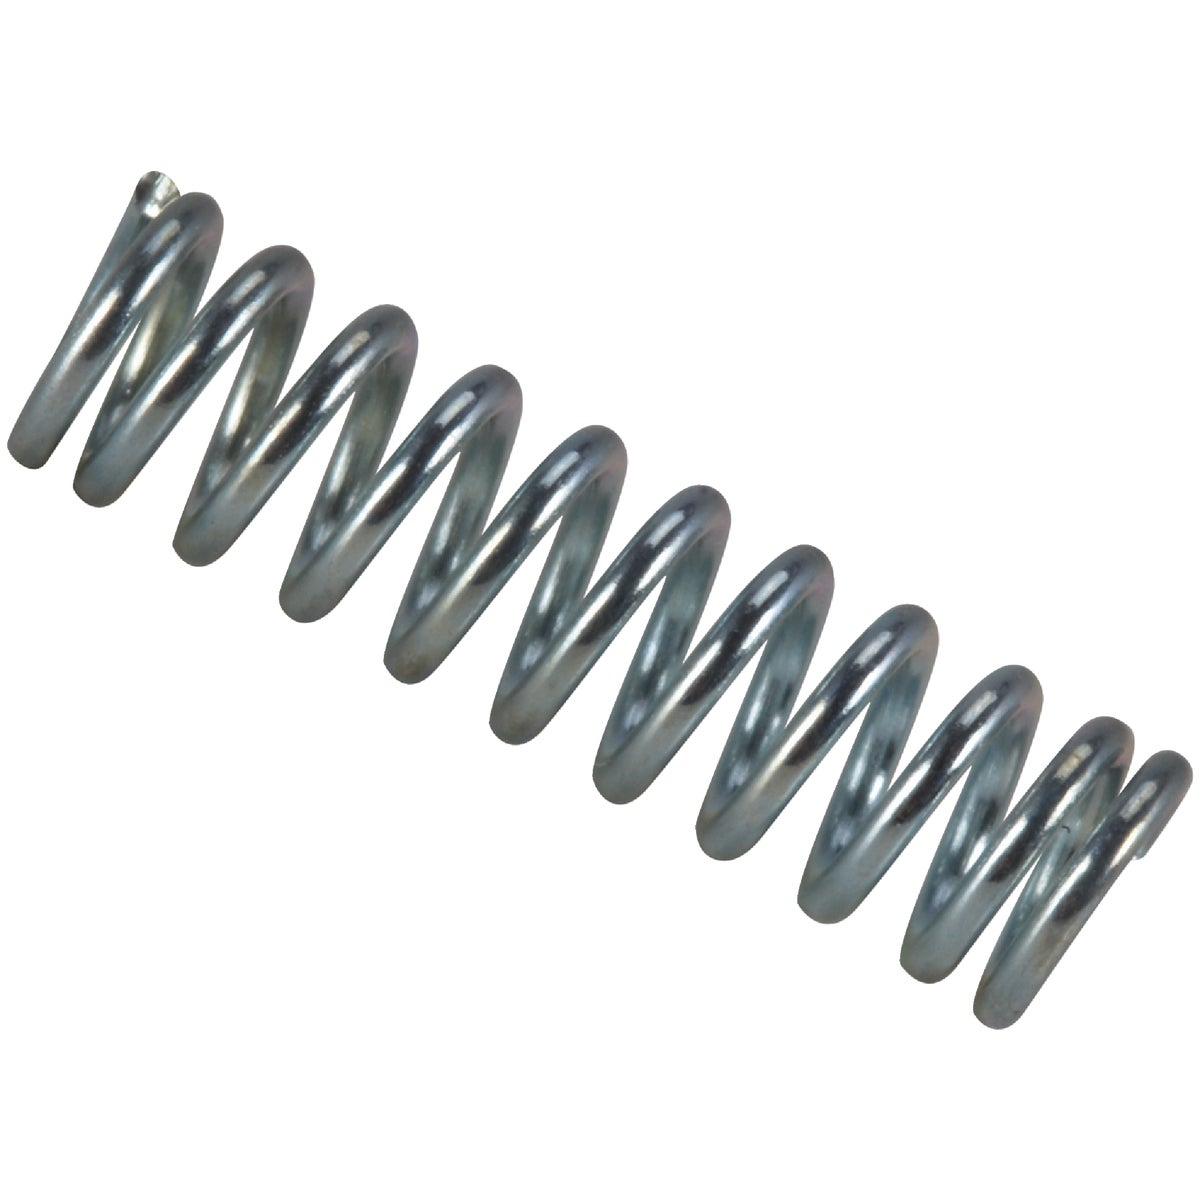 COMPRESSION SPRING - C-576 by Century Spring Corp